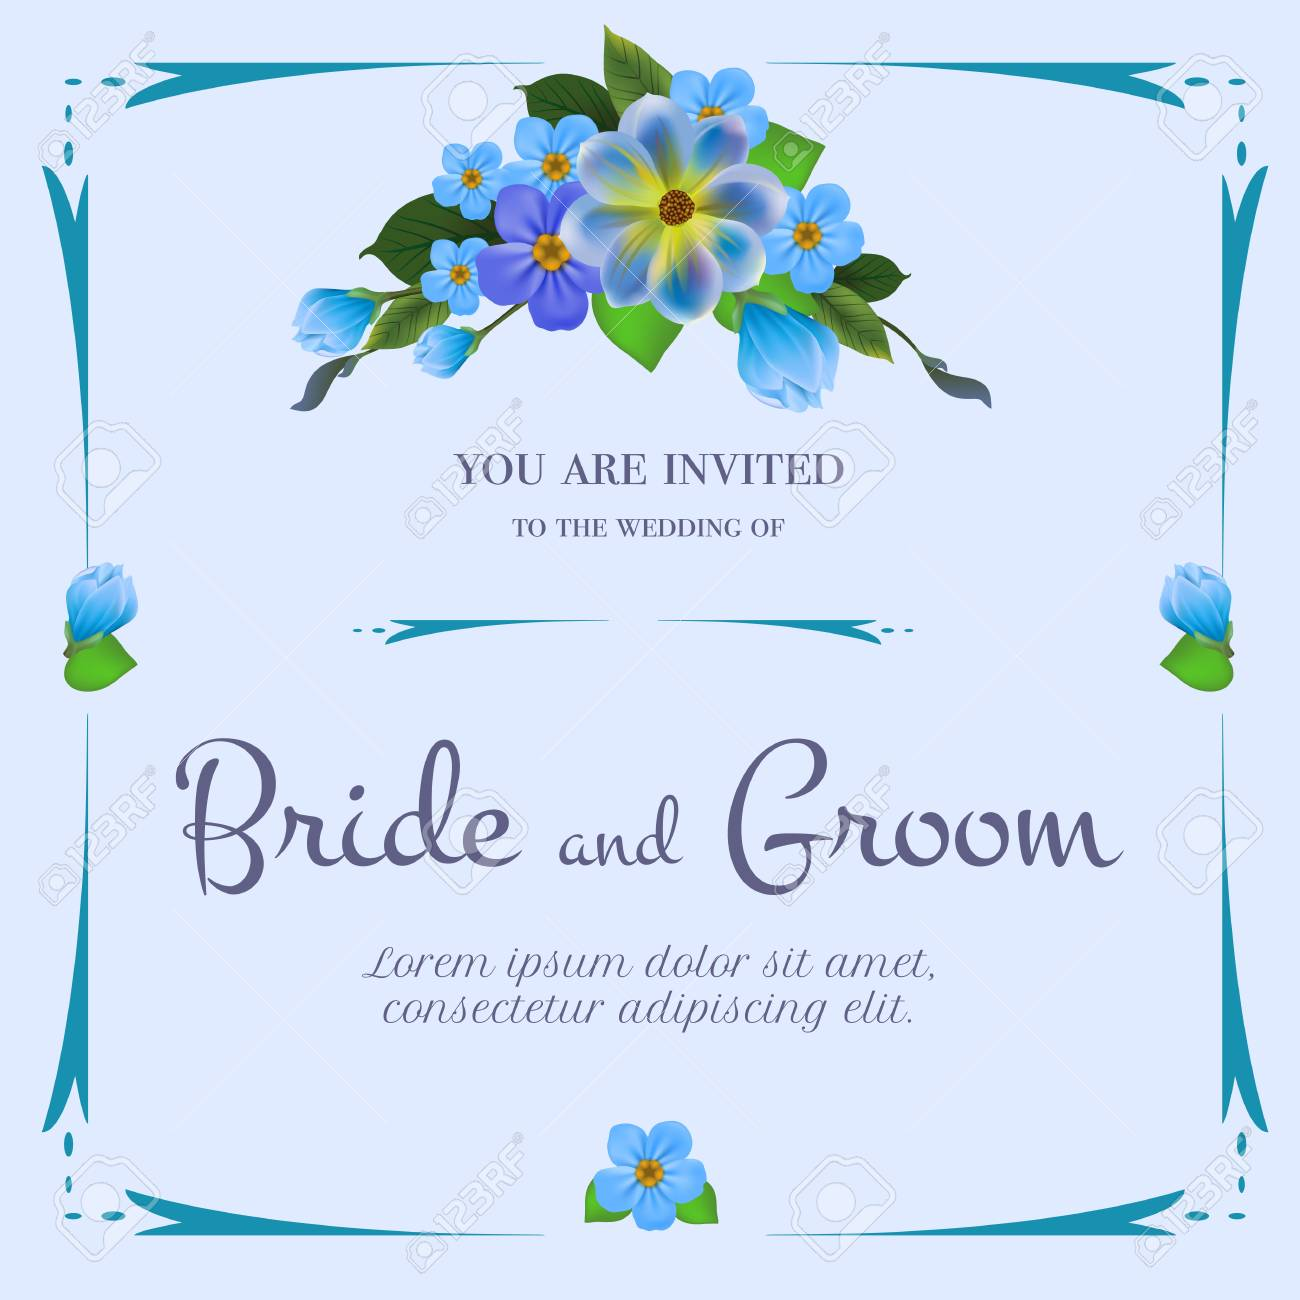 Wedding Invitation Design With Bunch Of Blue Flowers On Light Royalty Free Cliparts Vectors And Stock Illustration Image 103594567